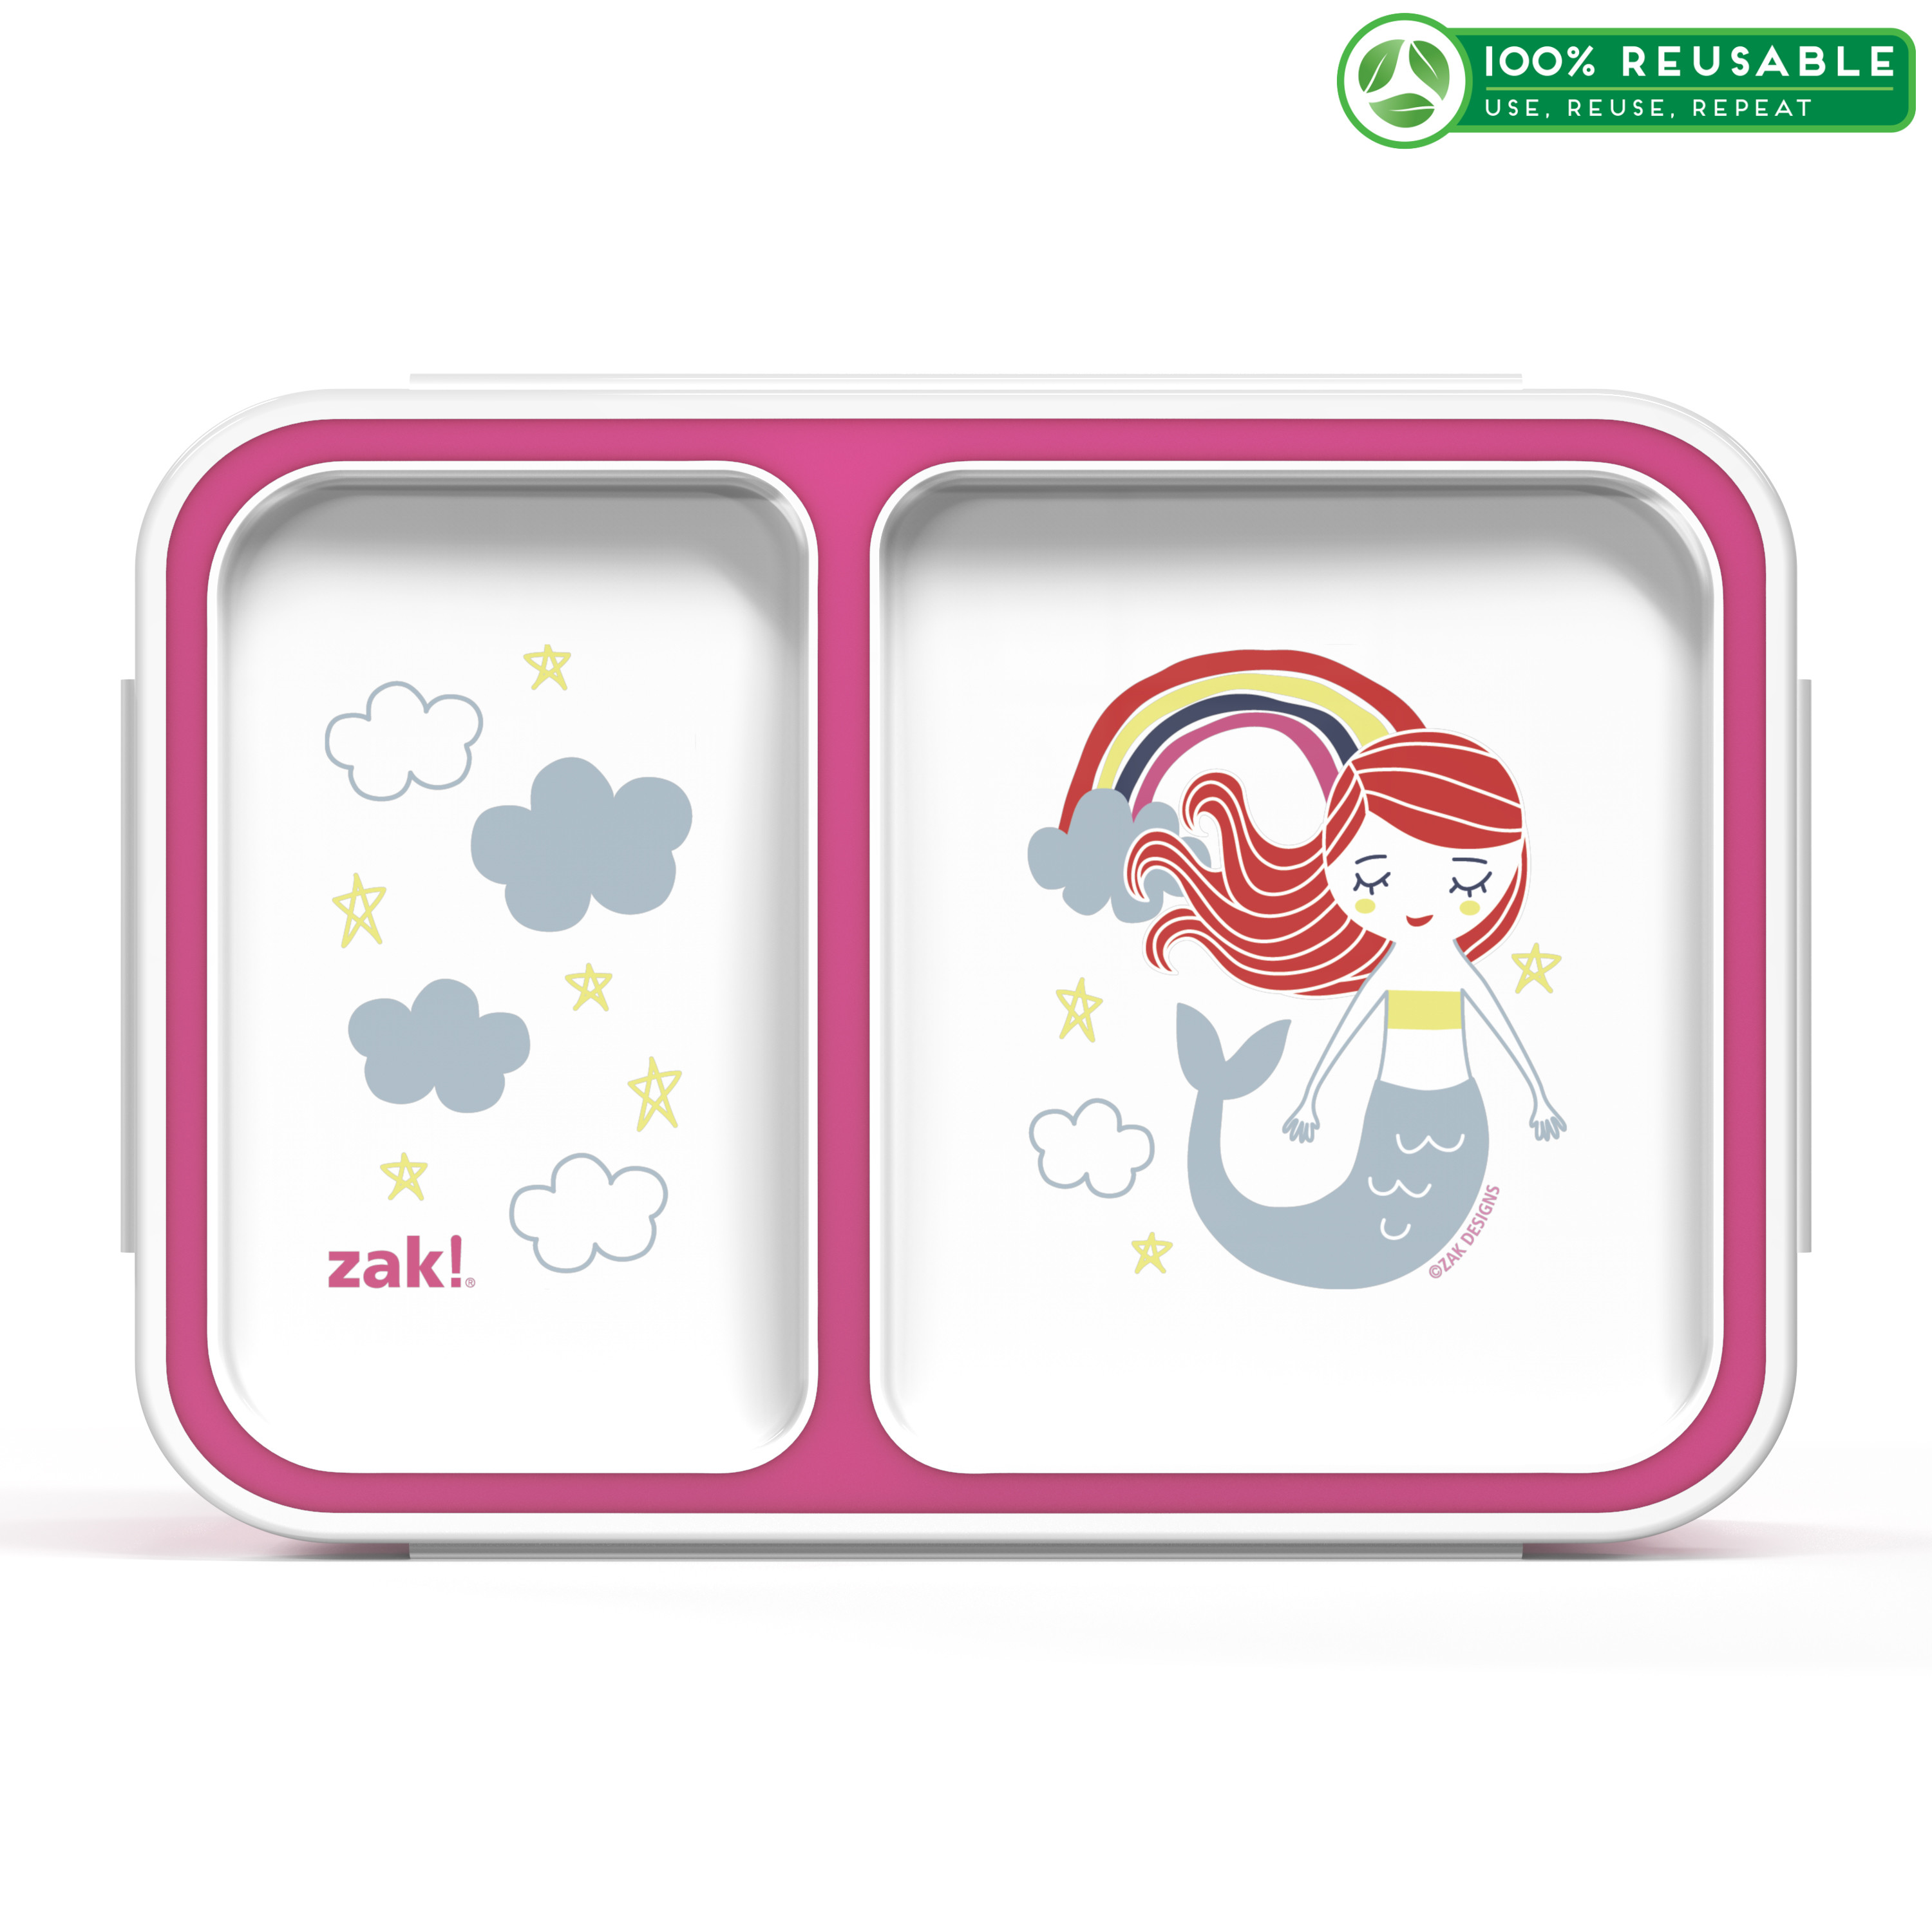 Happy Things Dual-compartment Reusable Bento Box, Mermaids slideshow image 1